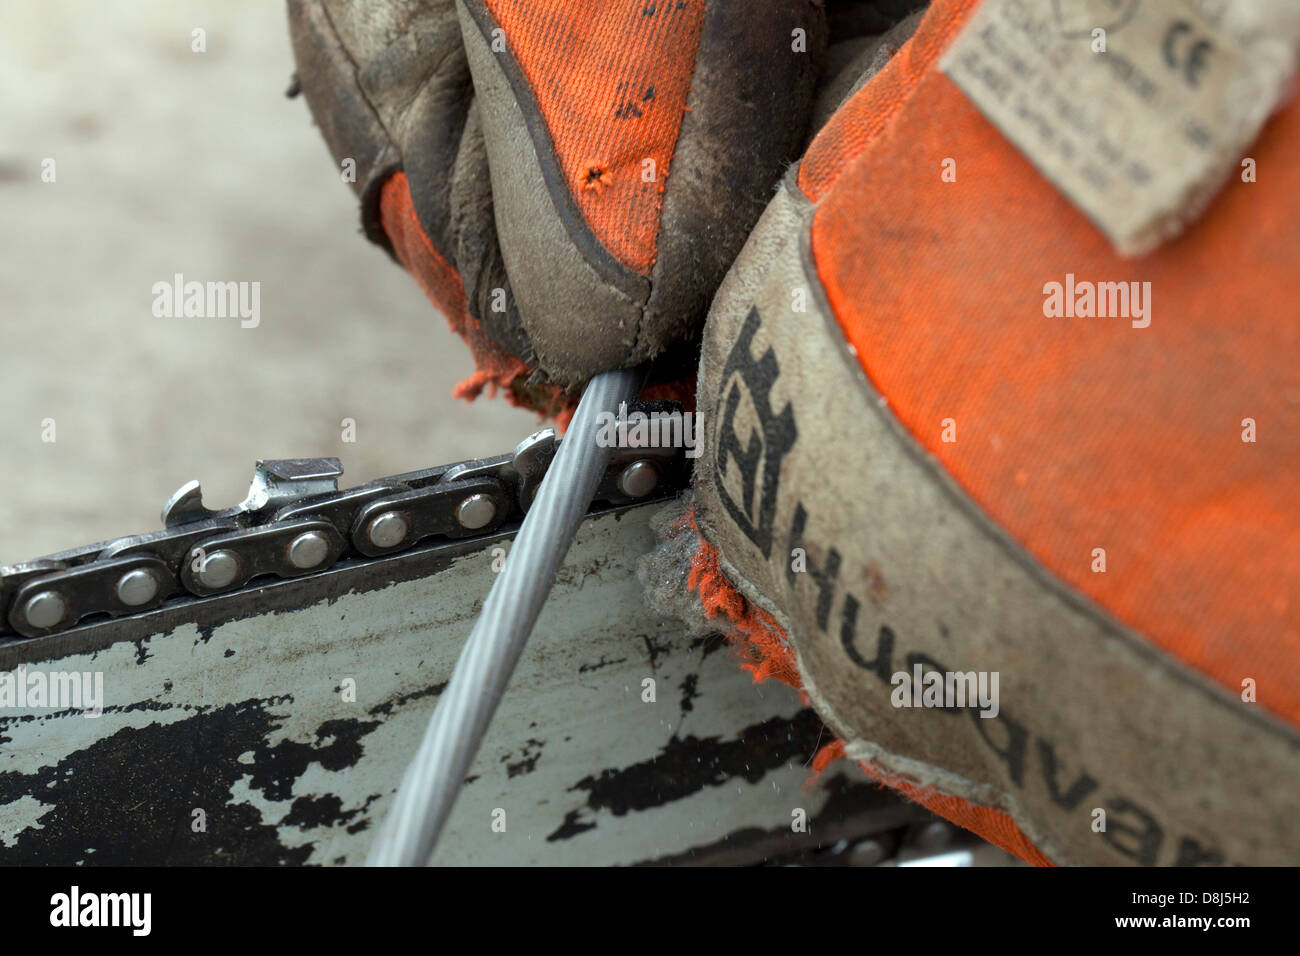 Sharpening the blades of a chain saw blade - Stock Image